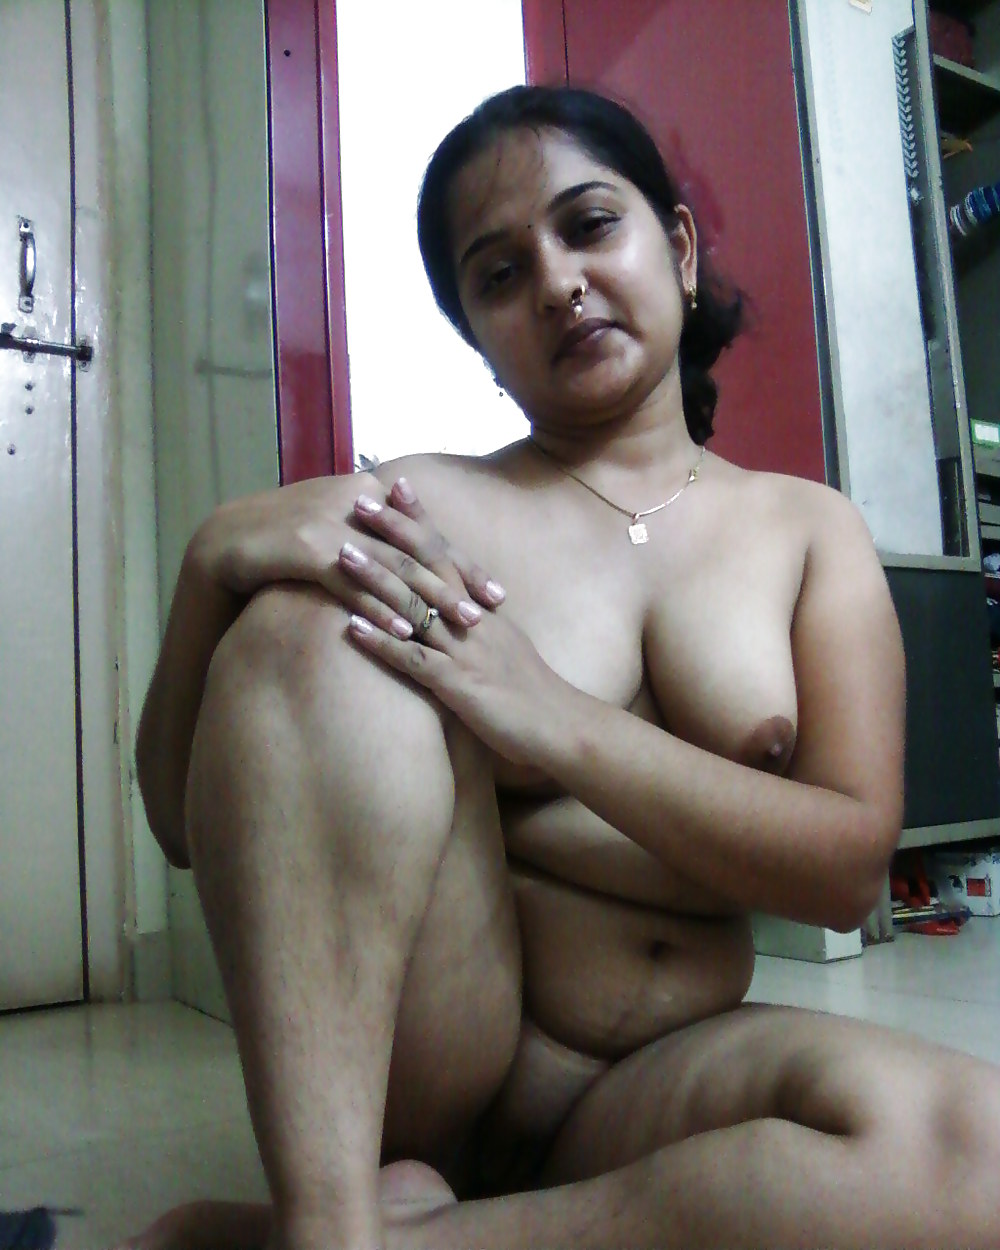 Pussy porno bihari bhabi porn photo foundry videos wwe